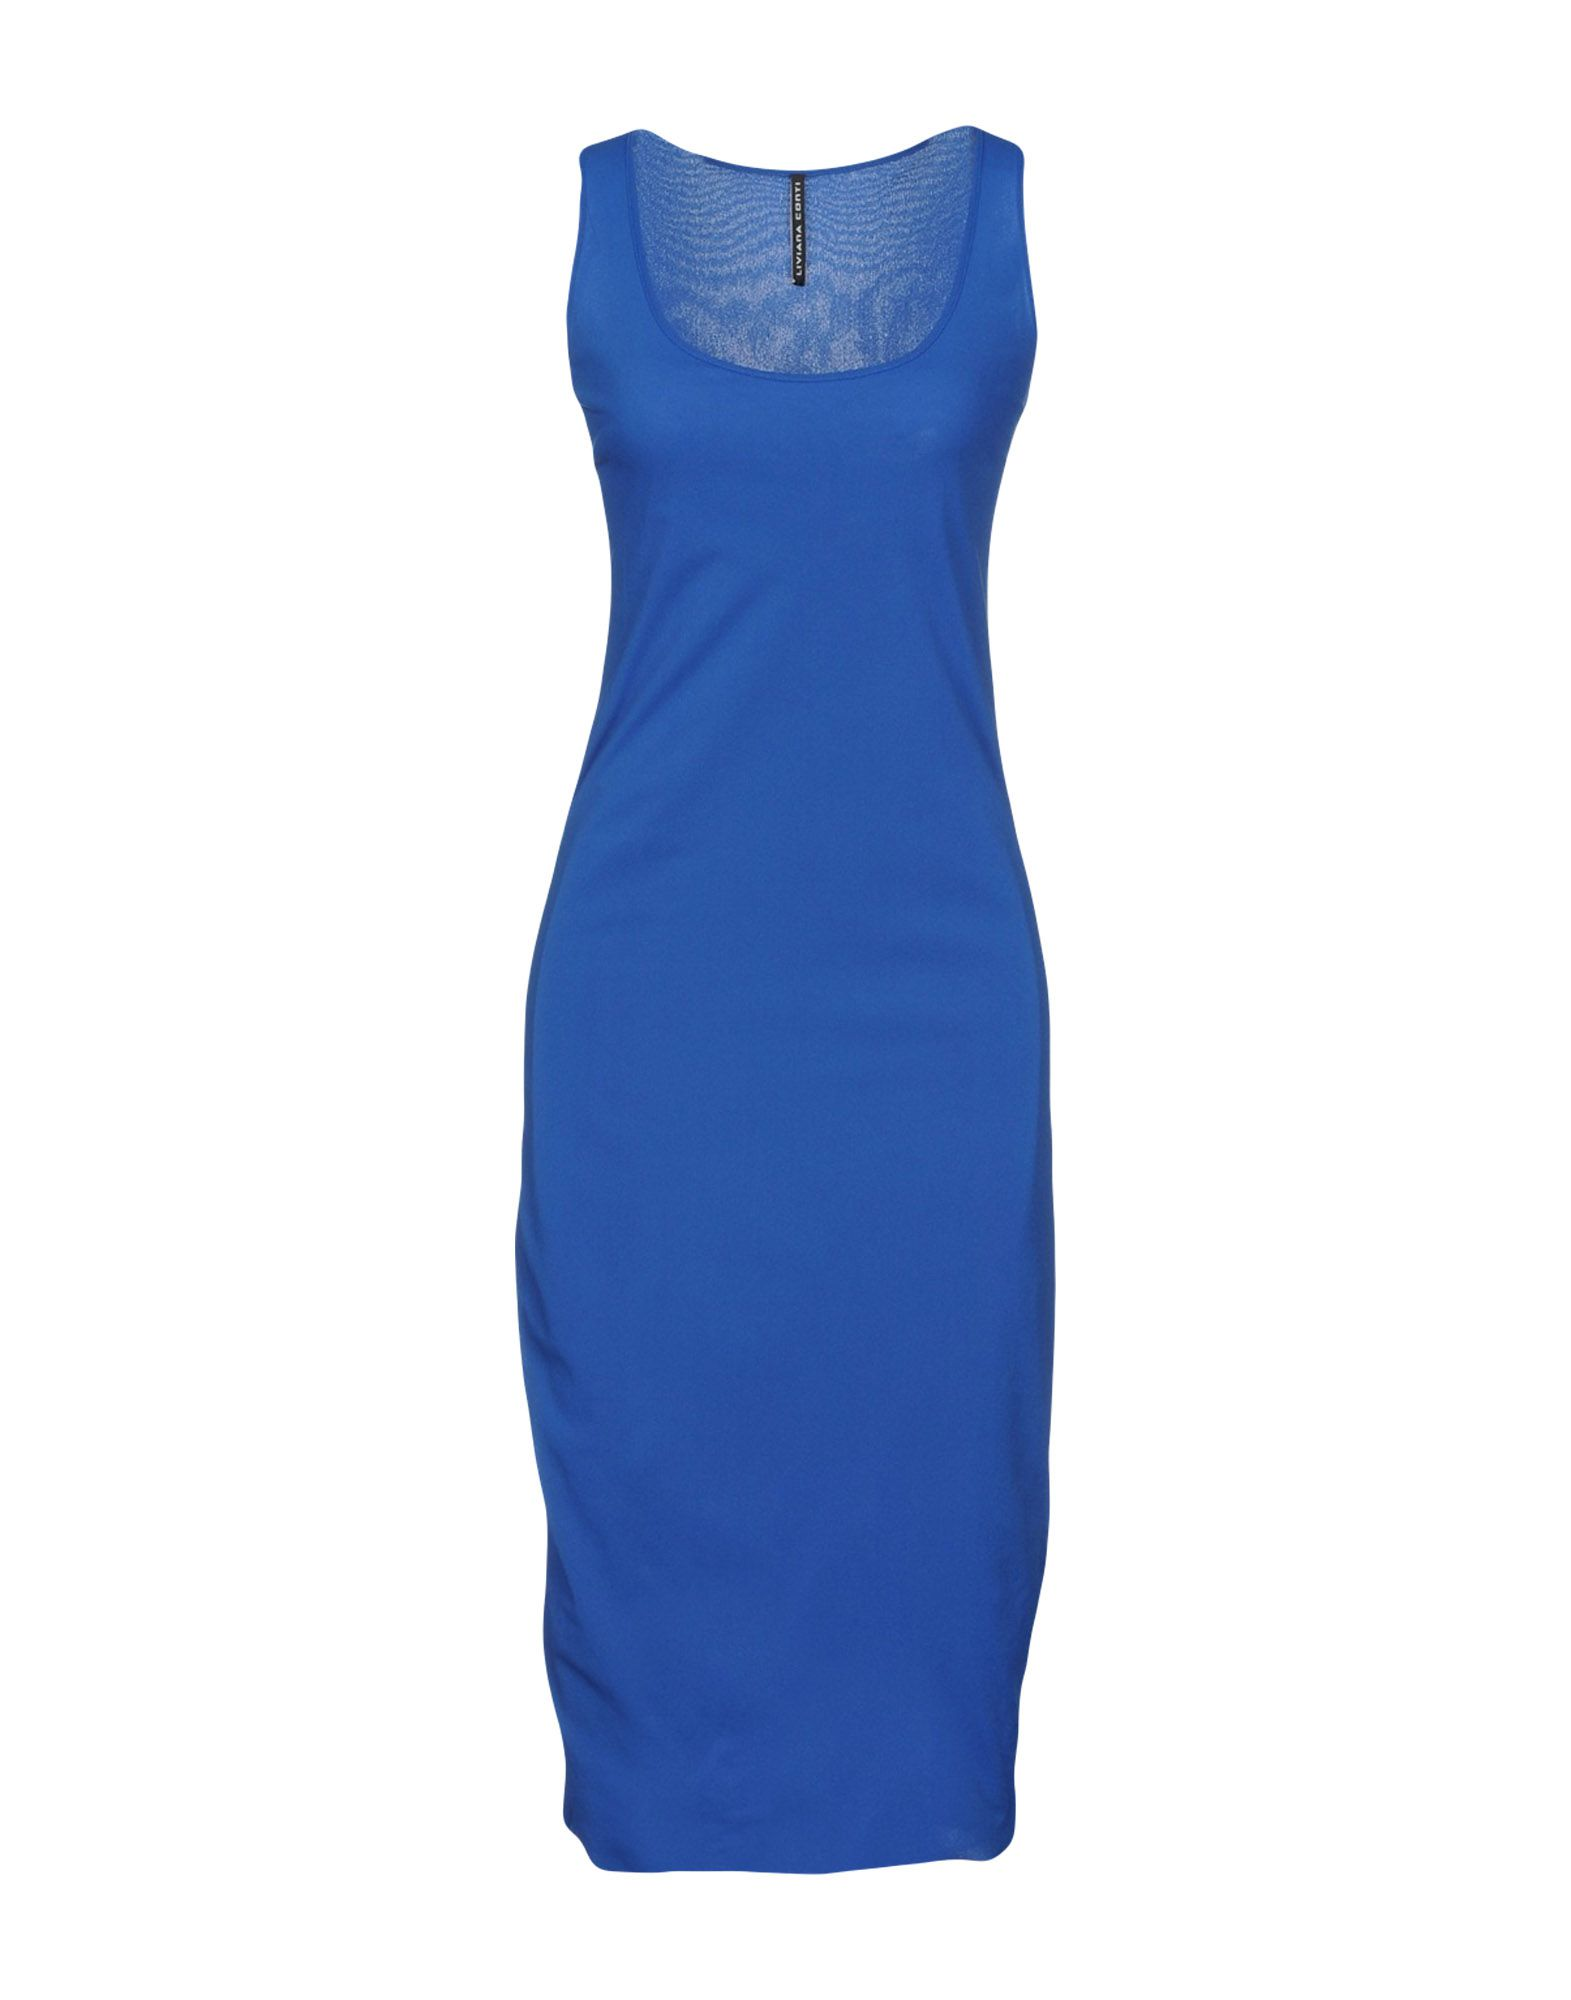 LIVIANA CONTI Knee-Length Dress in Azure